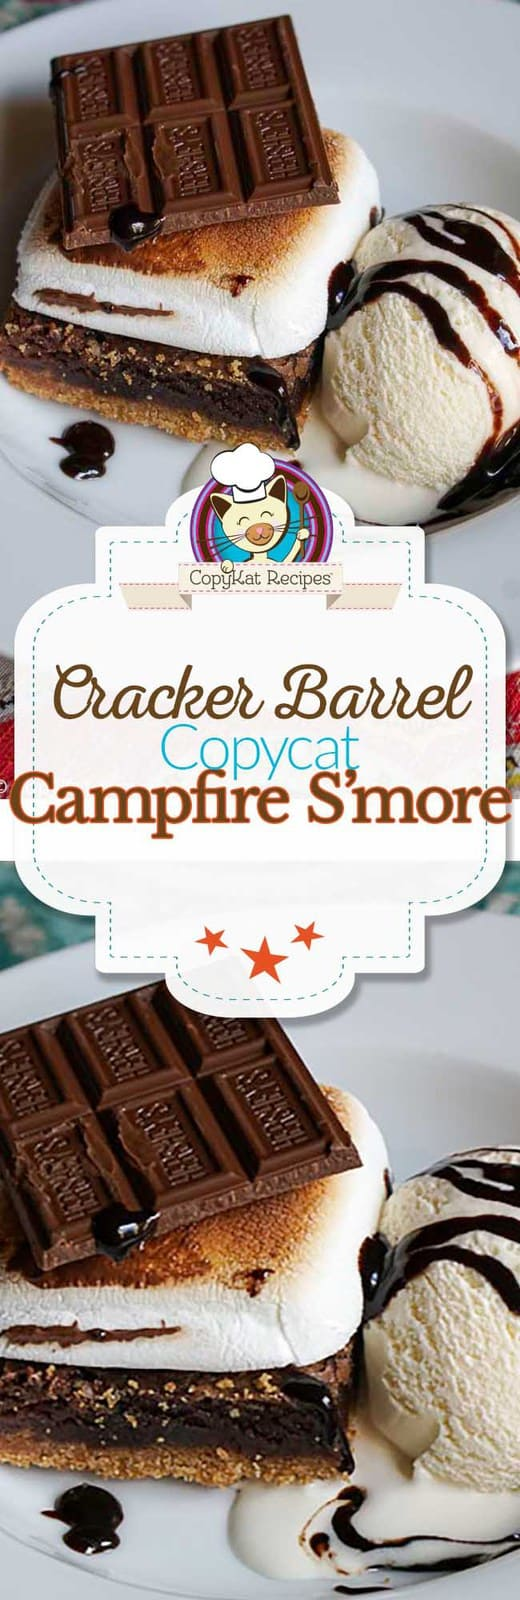 Make your own delicious Cracker Barrel Campfire S'more at home.